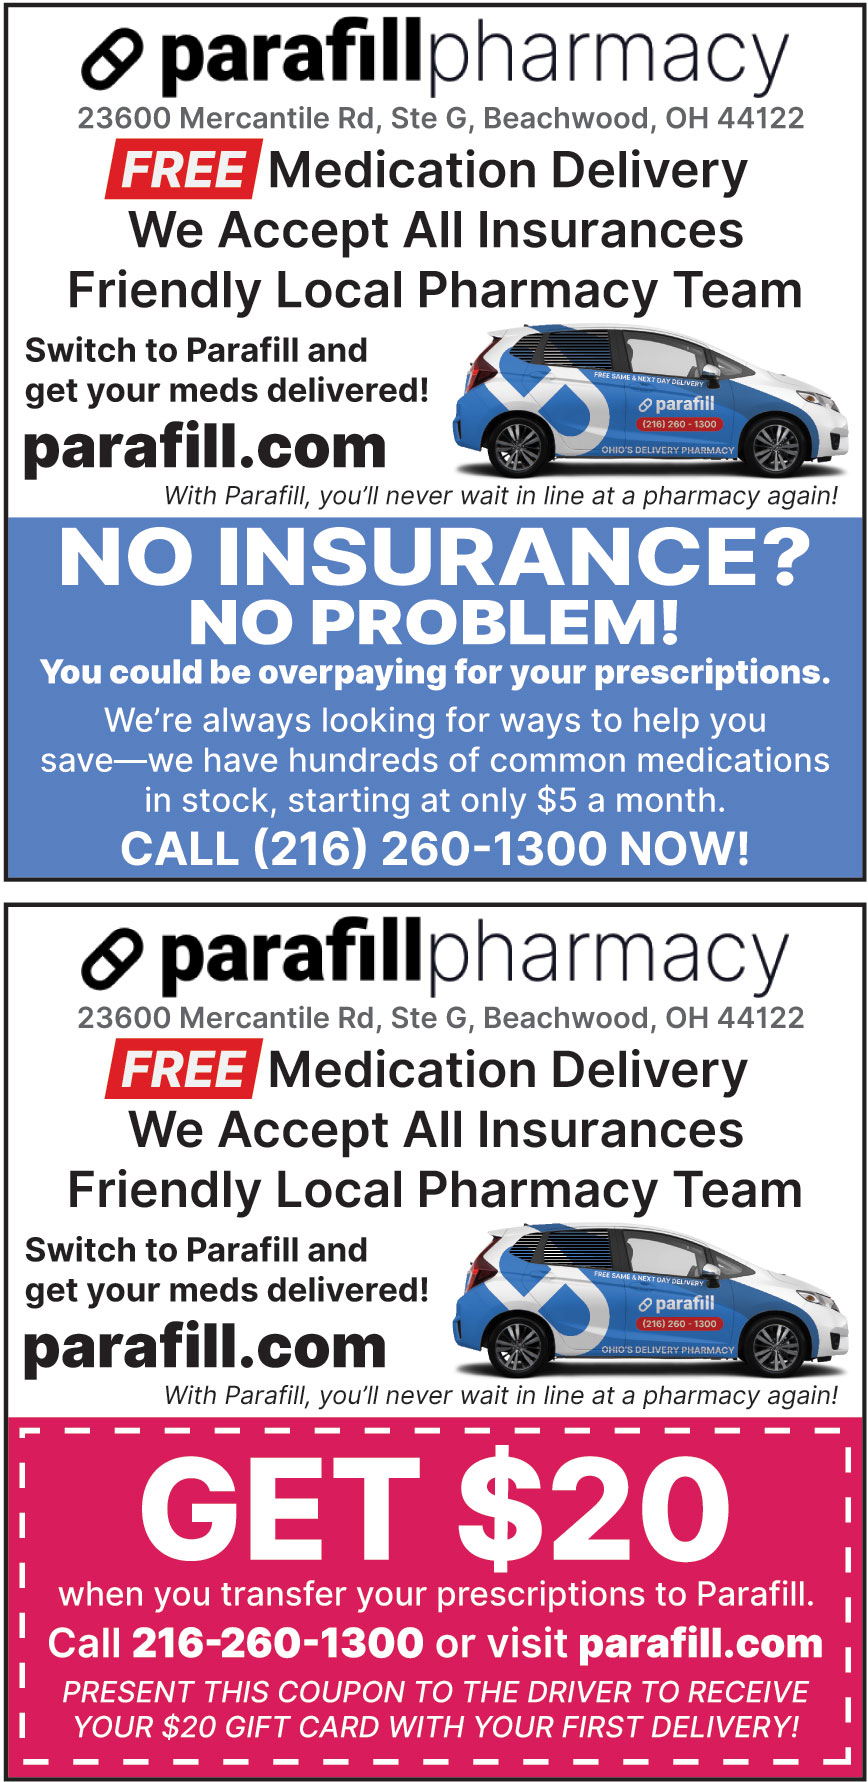 PARAFILL PHARMACY